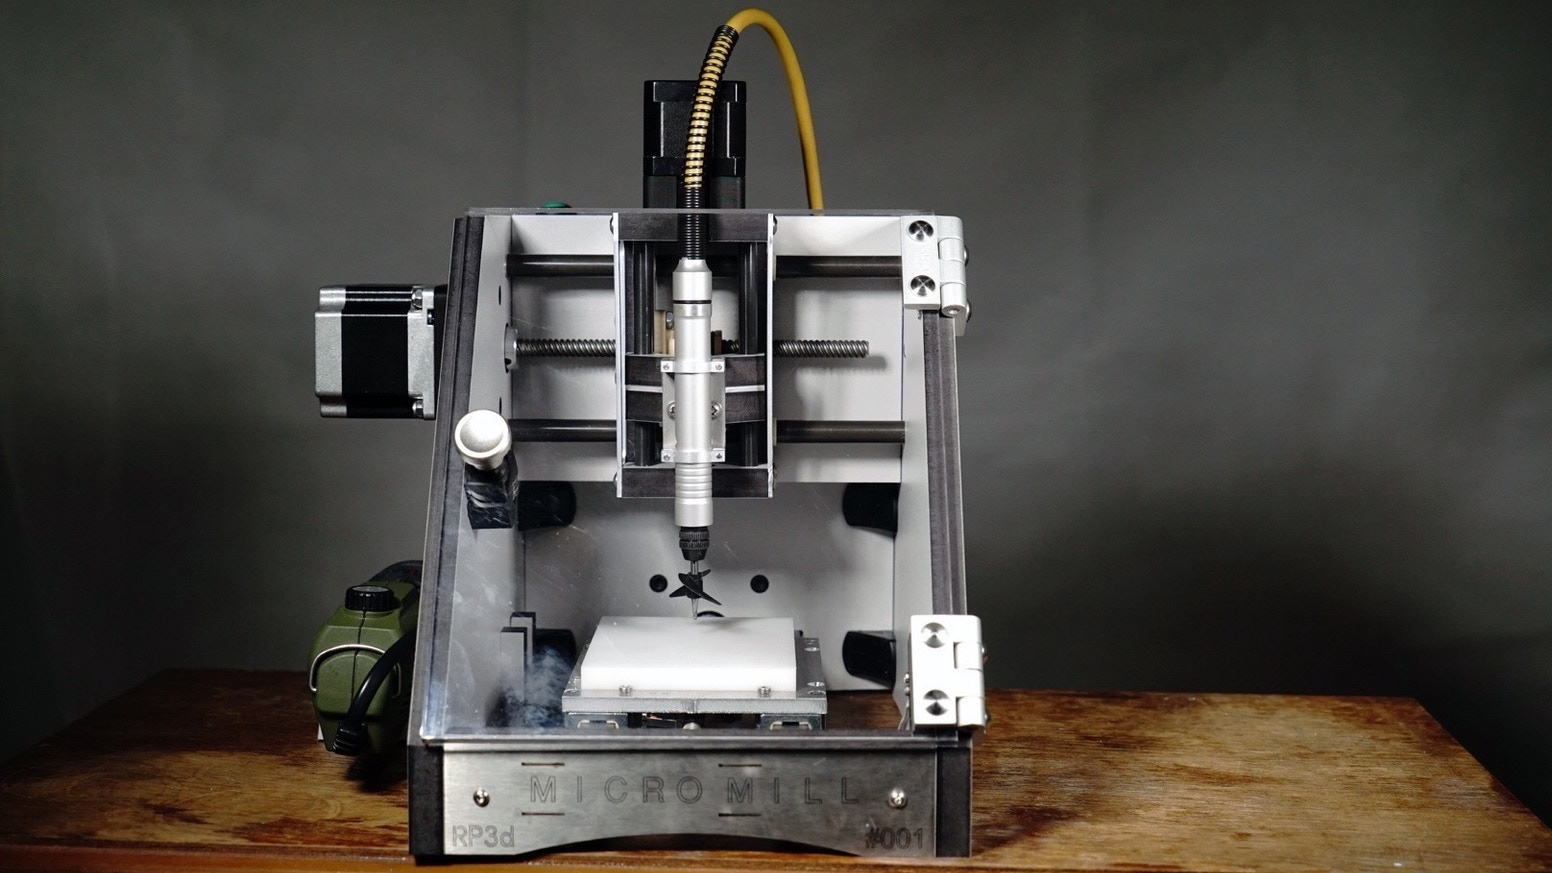 The Micromill A Desktop Cnc Milling Machine By Rp3d